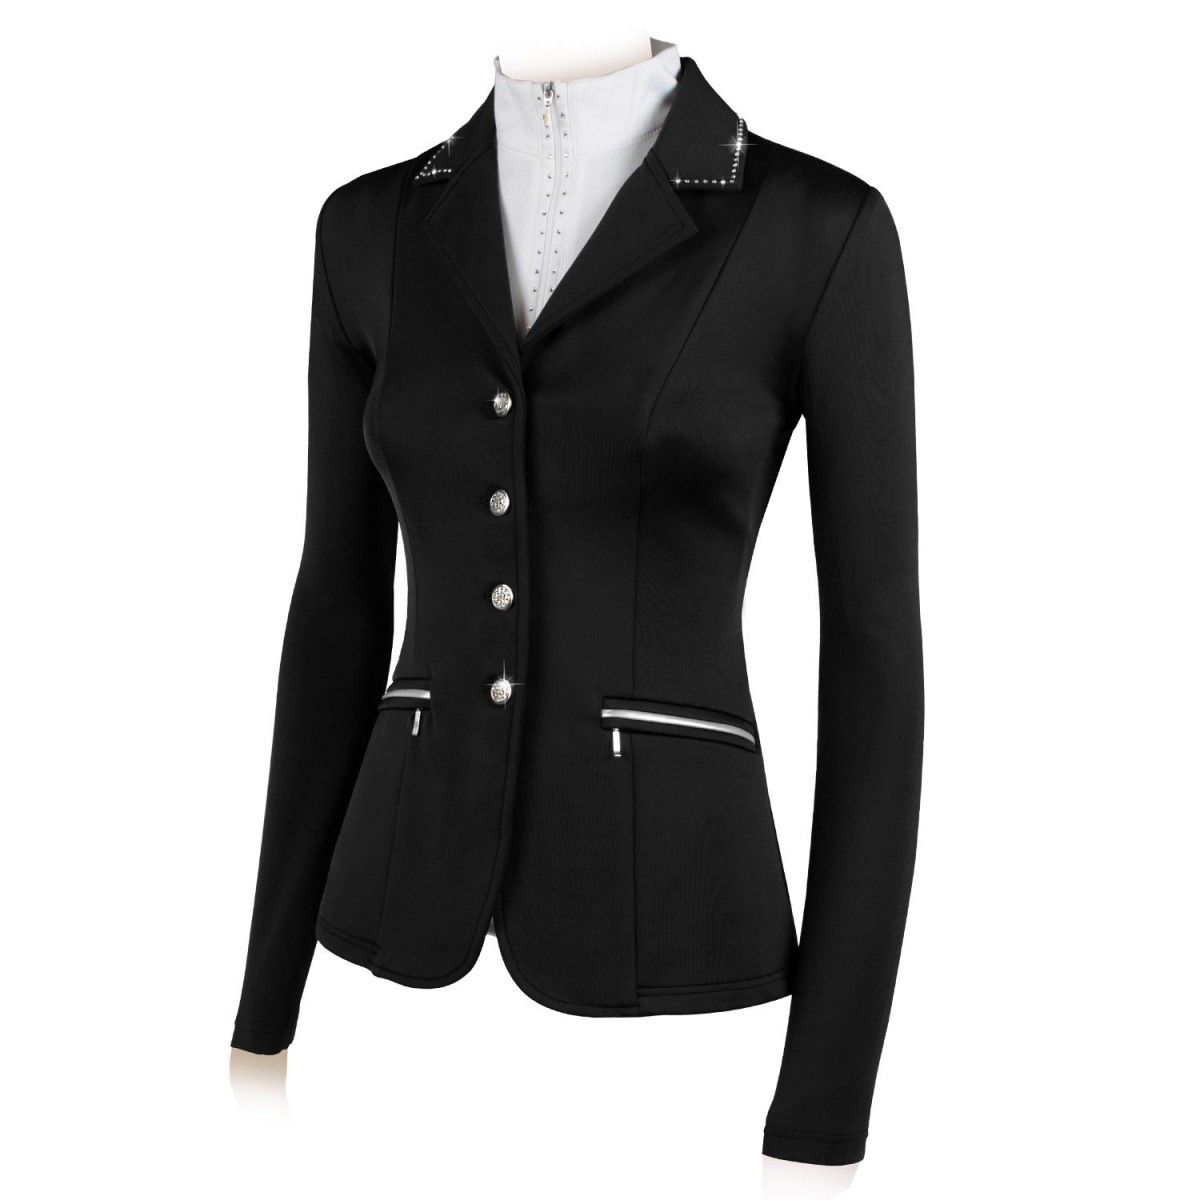 Horses Flora Show Jacket With Rhinestones Show Jackets Equestrian Outfits Clothes [ 1200 x 1200 Pixel ]